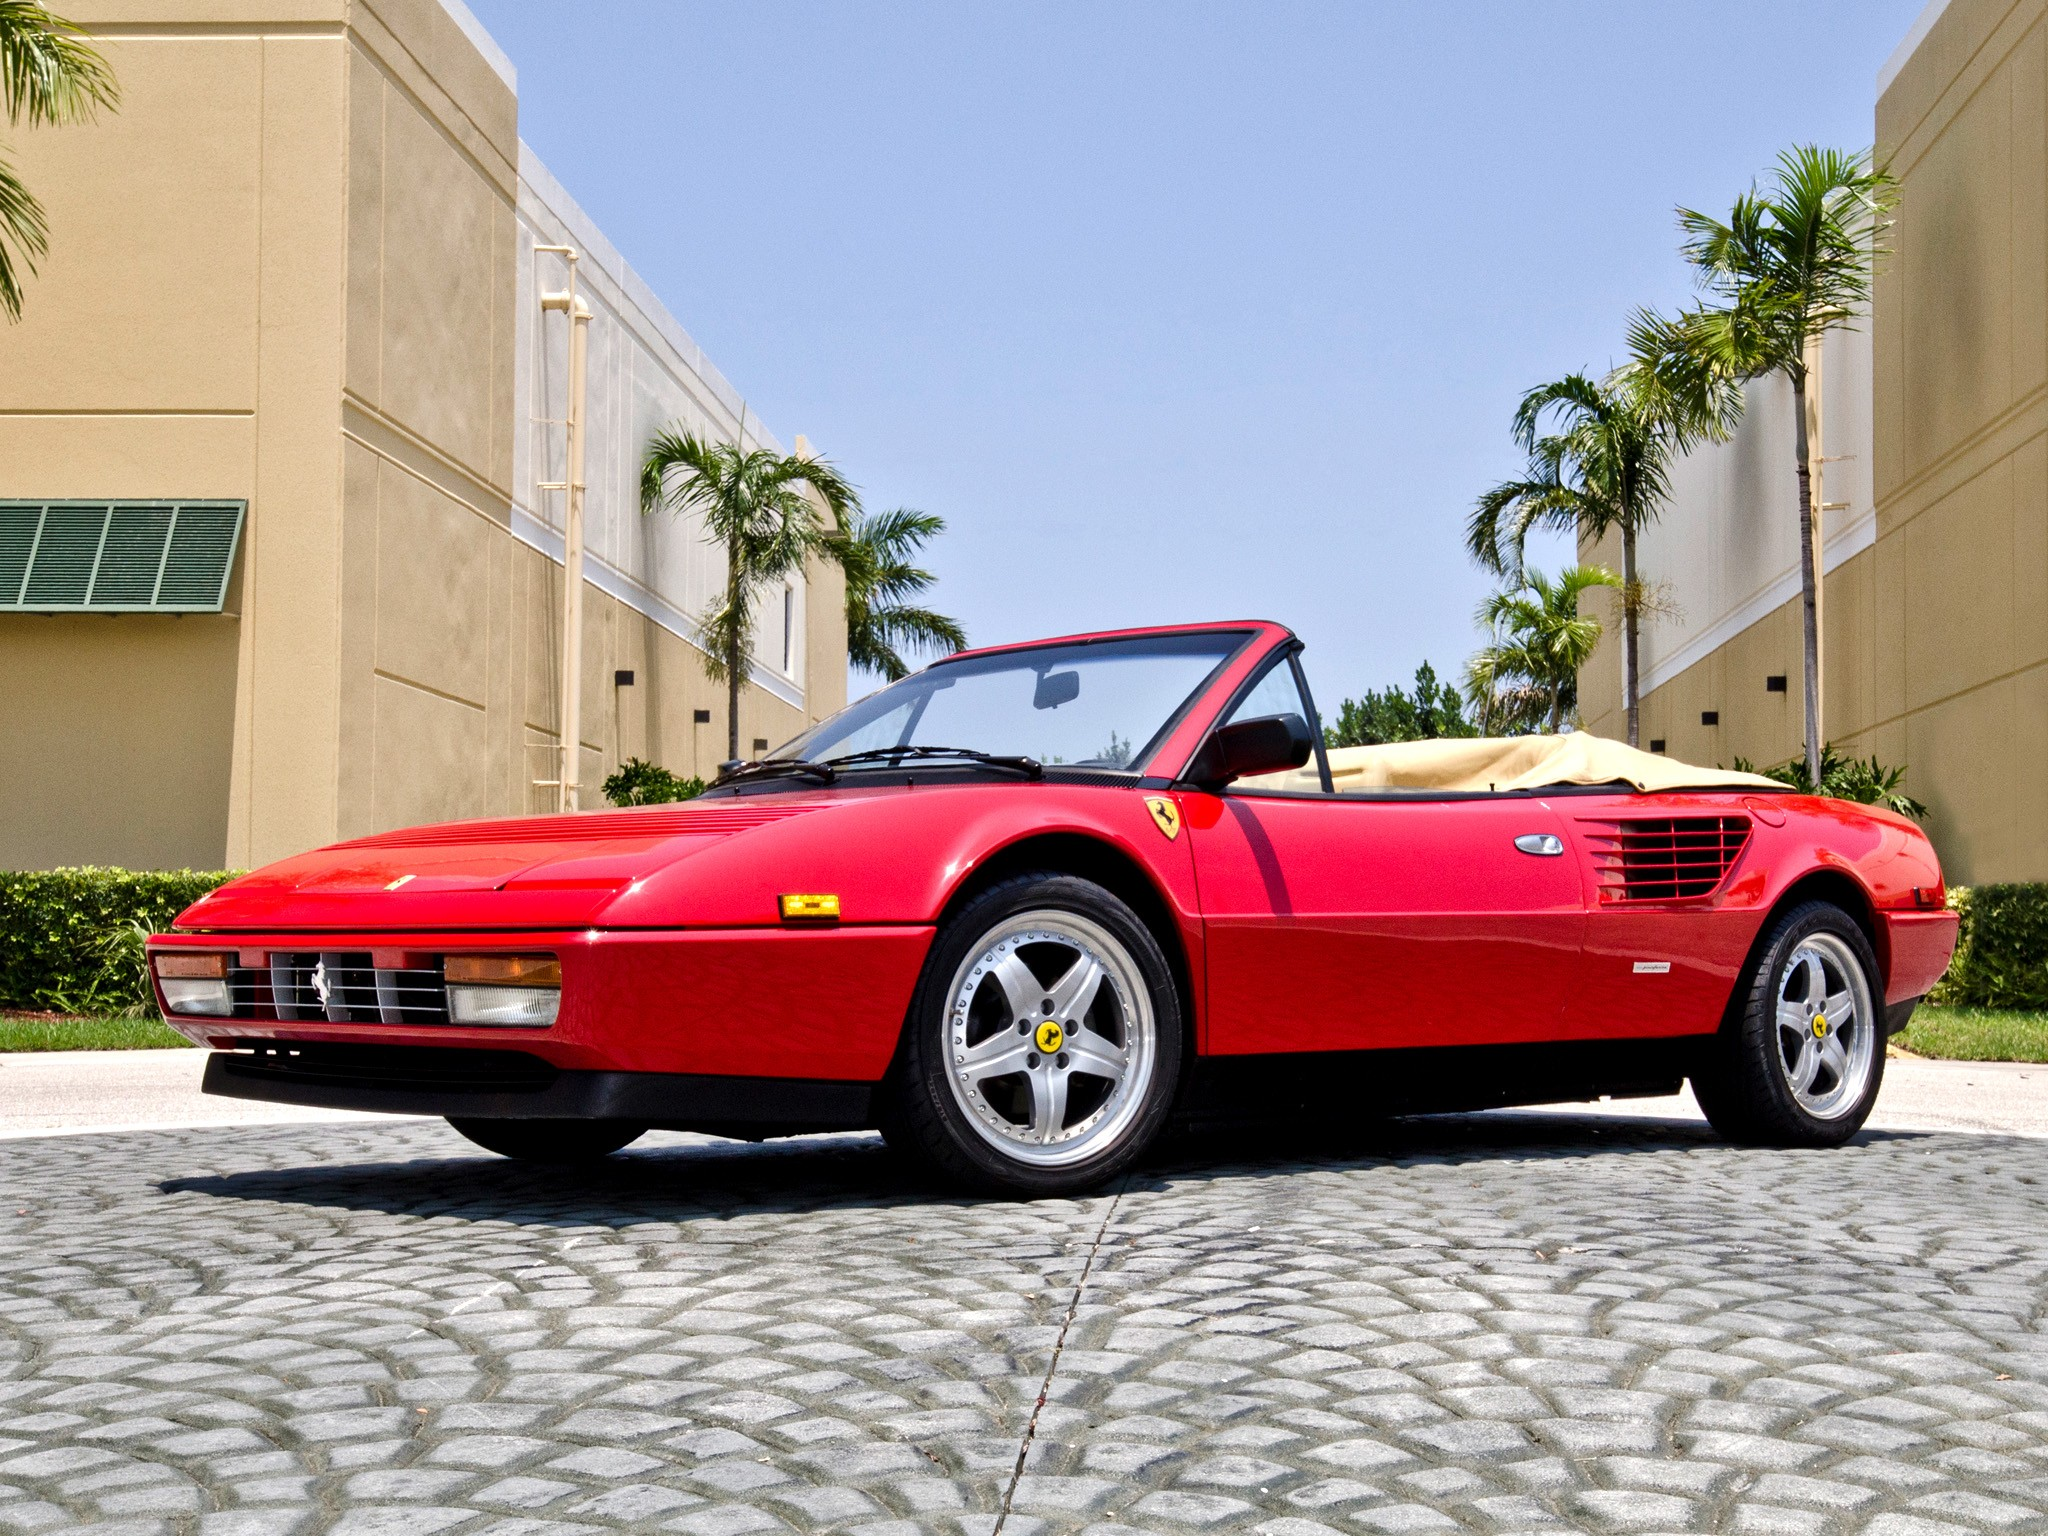 ferrari mondial 3 2 cabriolet quattrovalvole 1985 1989. Black Bedroom Furniture Sets. Home Design Ideas